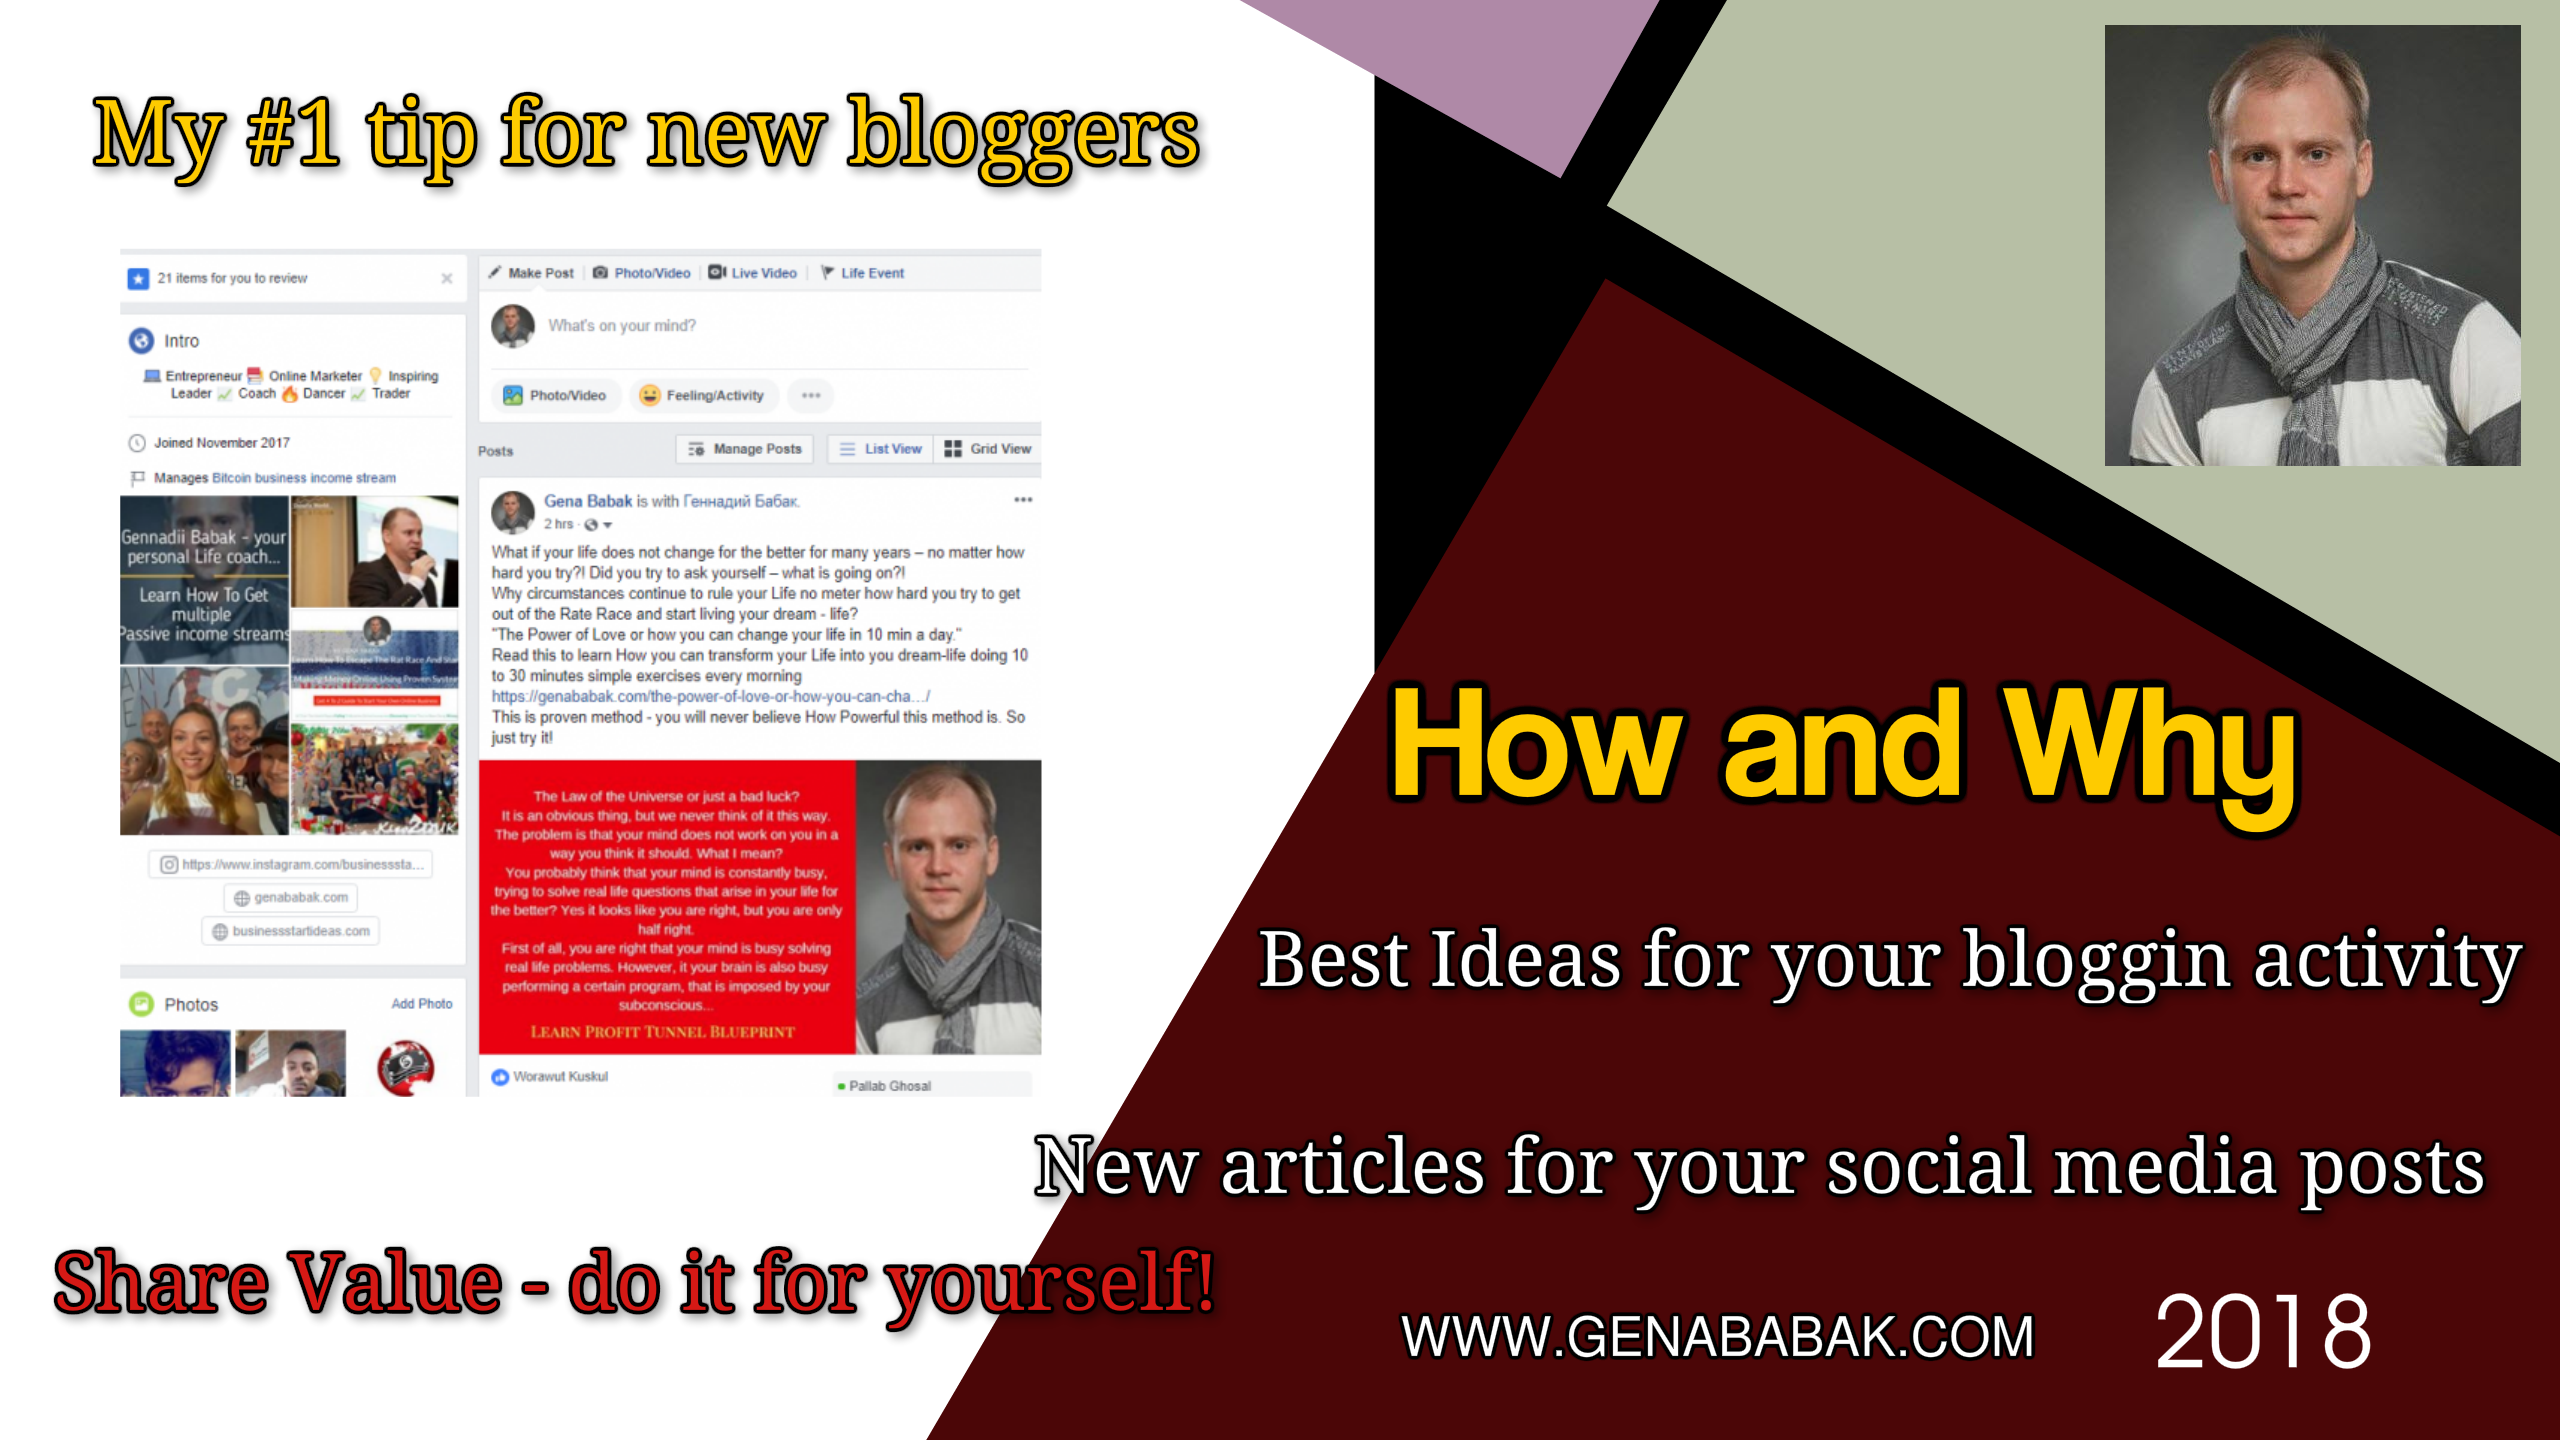 BEST IDEAS FOR YOUR BLOGGING ACTIVITY